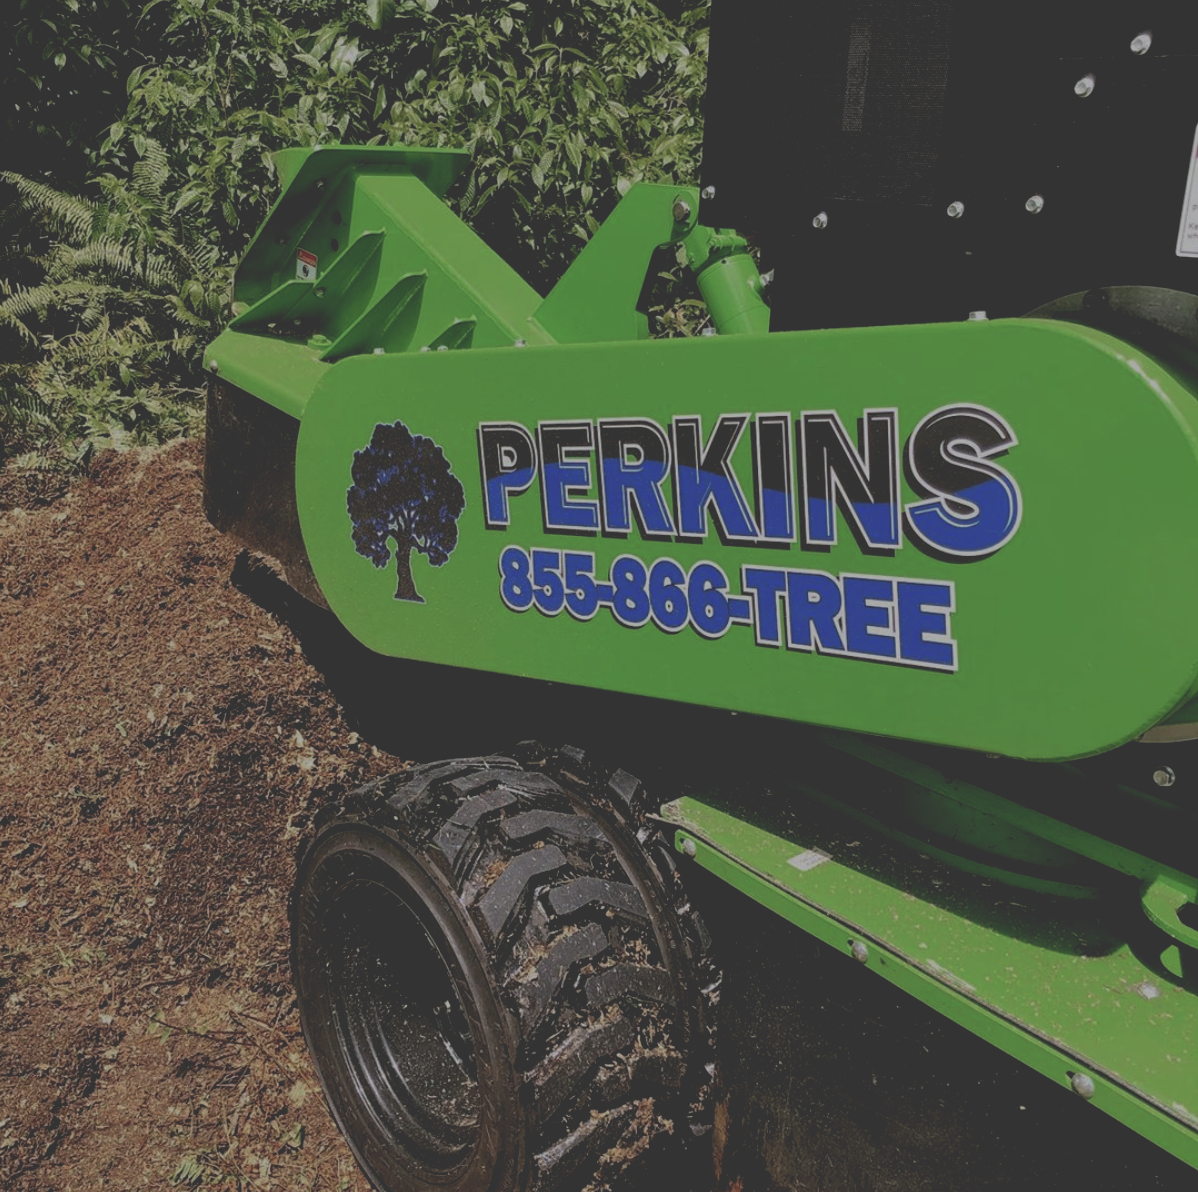 Stump Grinding - We utilize the most renowned equipment for our clean, top-quality stump grinding services.